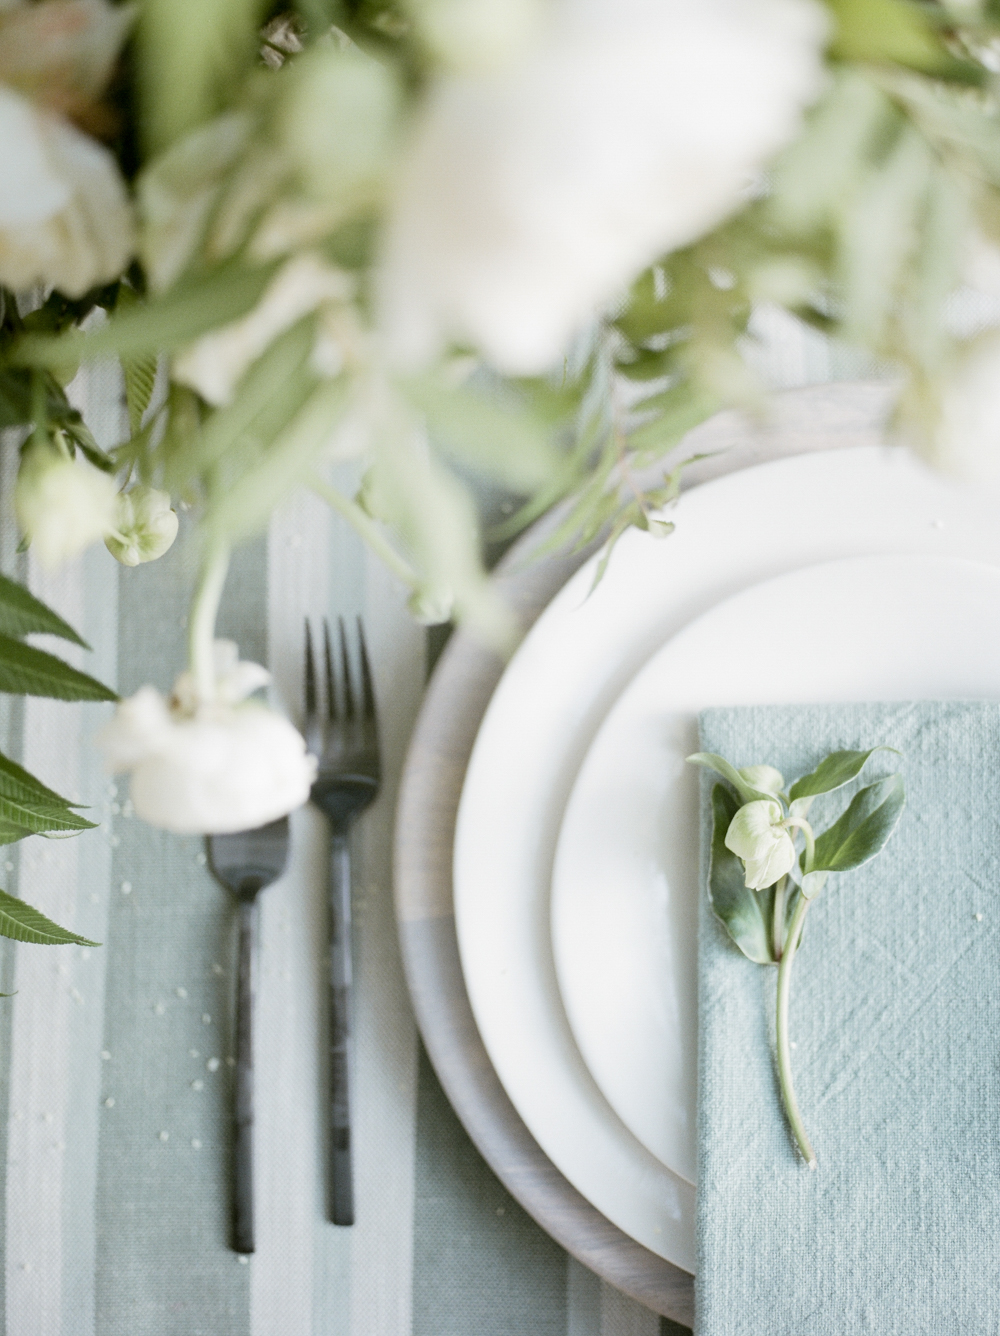 christine-gosch-barr-mansion-austin-wedding-venues-venue-simple-film-photographer-wedding-sparrow-alexandra-grecco-sprout-floals-feathers-and-frosting-classic-inspired-photography-mayhar-design21.jpg